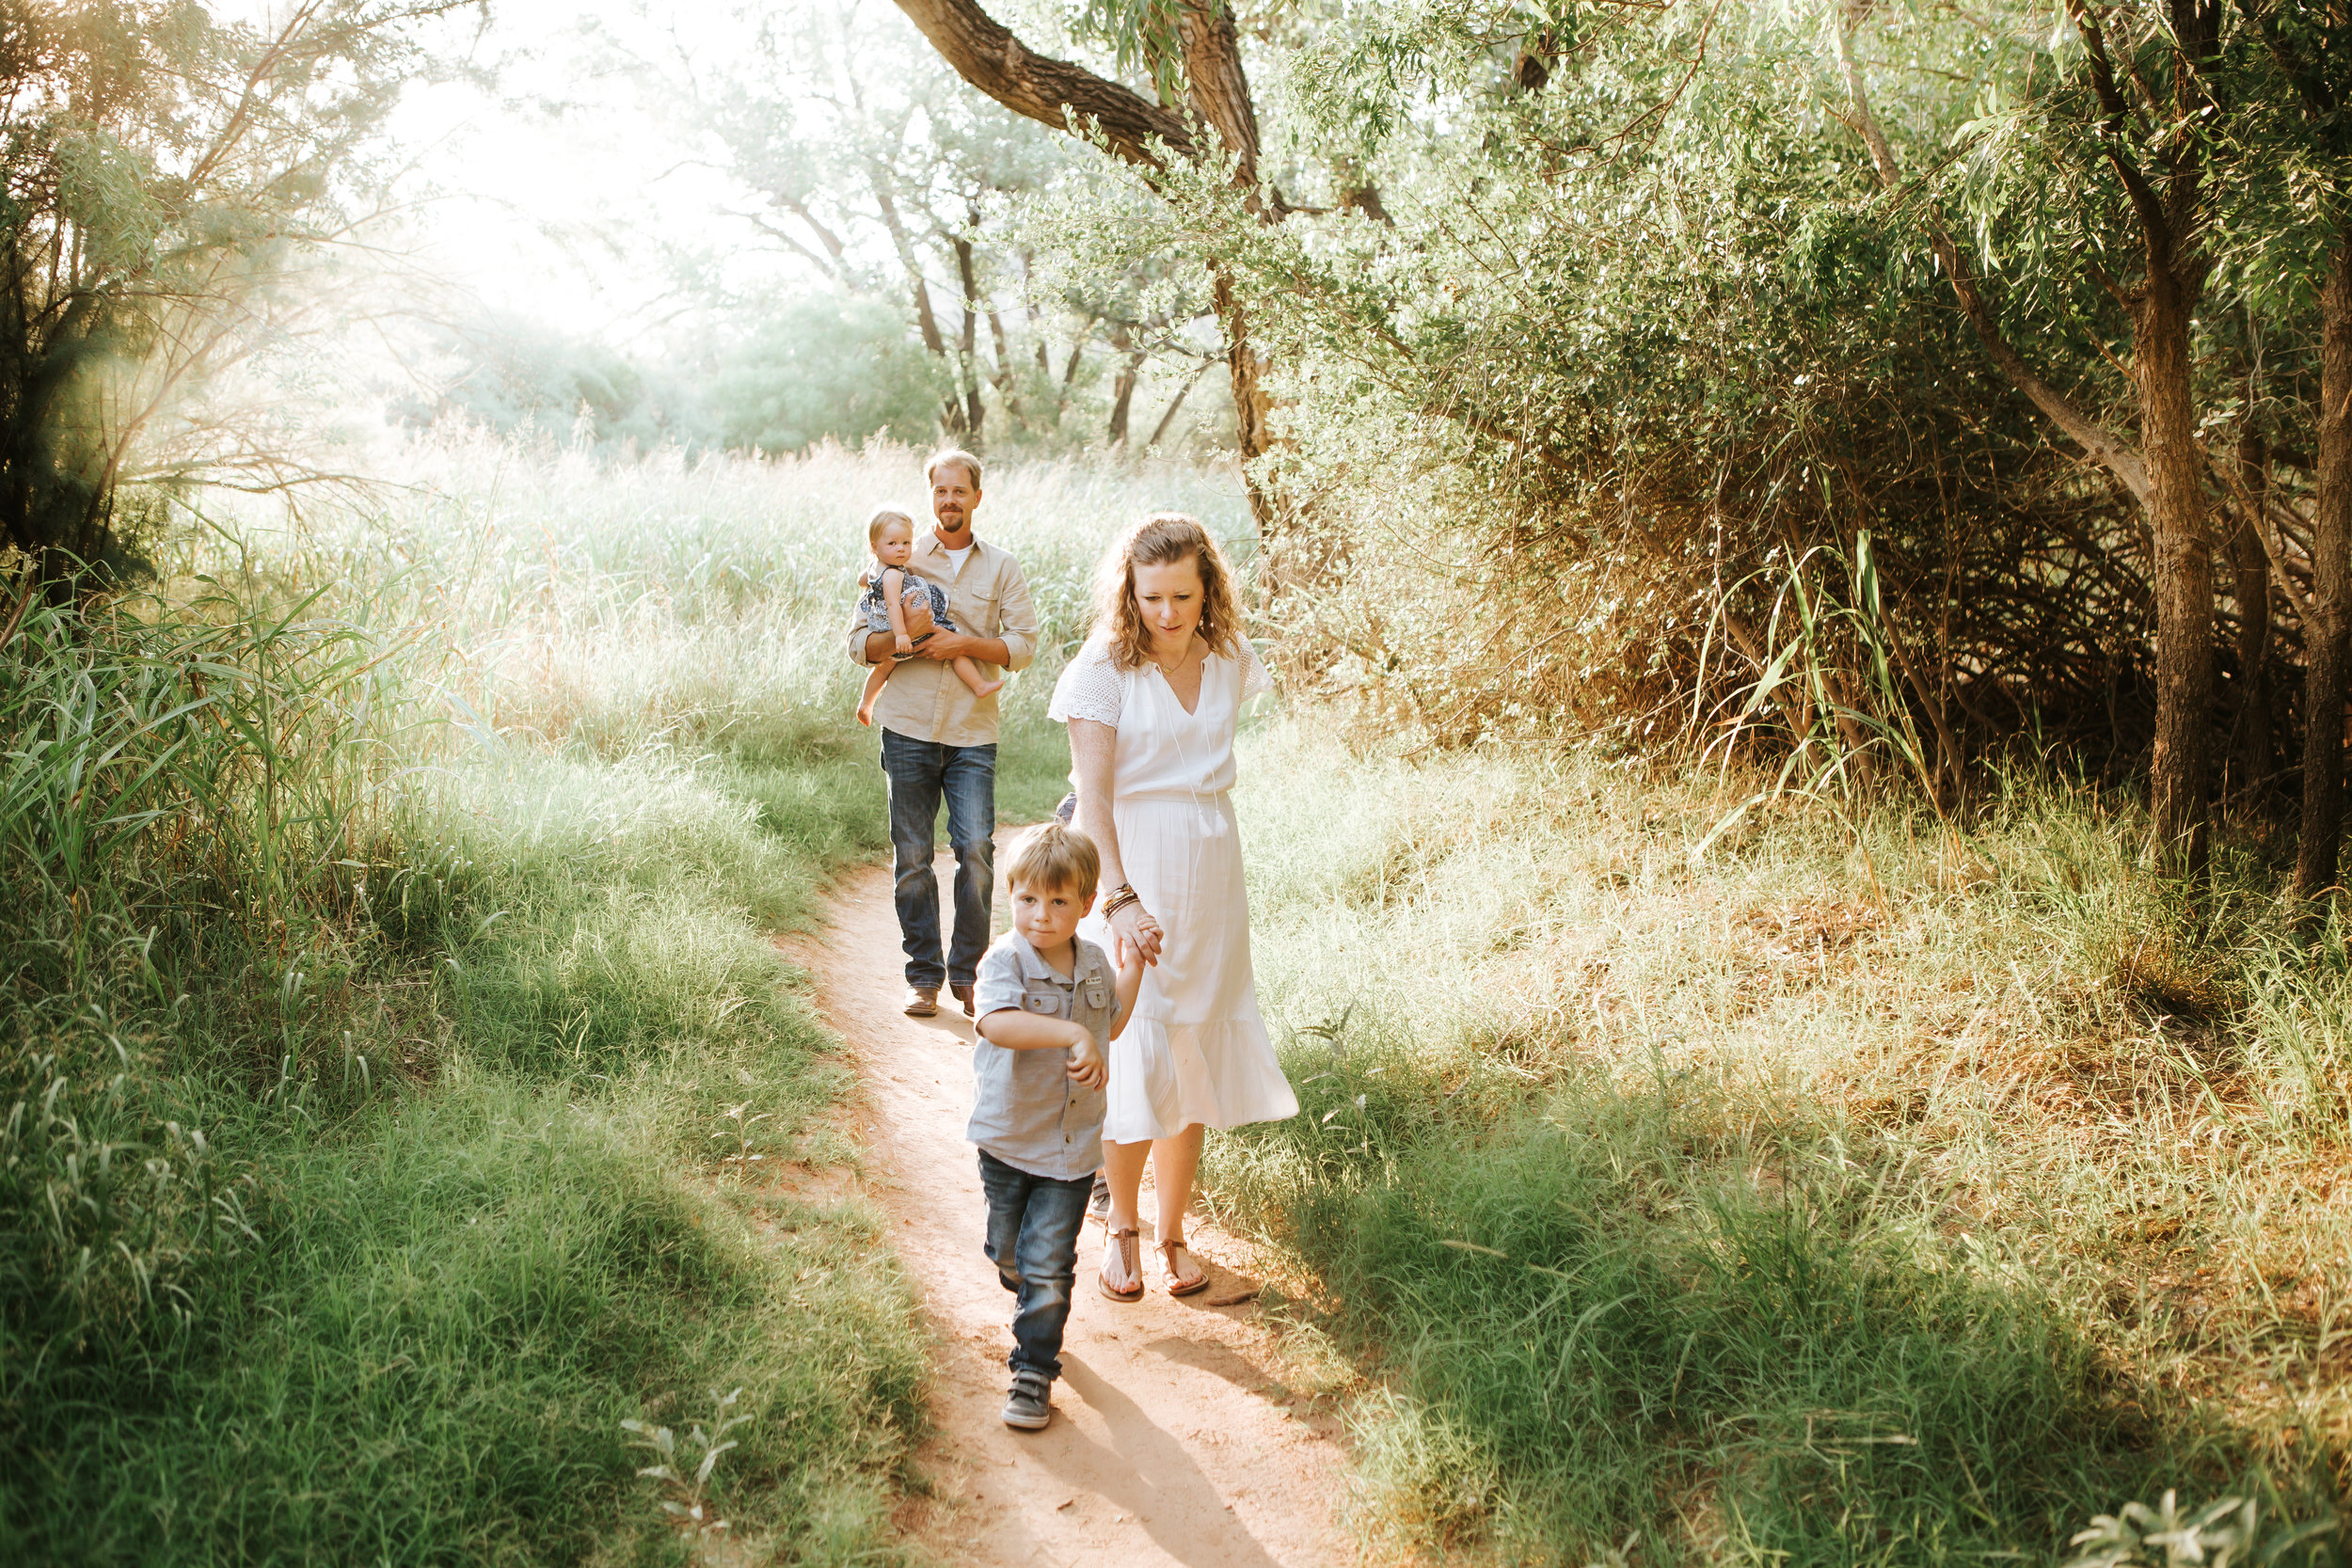 Family walking down the path with sun set behind them and green lush grass surrounding them #tealawardphotography #texassummerphotographer #pictureseason #amarillophotographer #amarillofamilyphotographer #emotionalphotography #engagementphotography #couplesphotography #pickingaseasonforphotosessions #whatsimportant #everythingtogether #pickingcolorsforphotos #summerphotos #greeneryinphotos